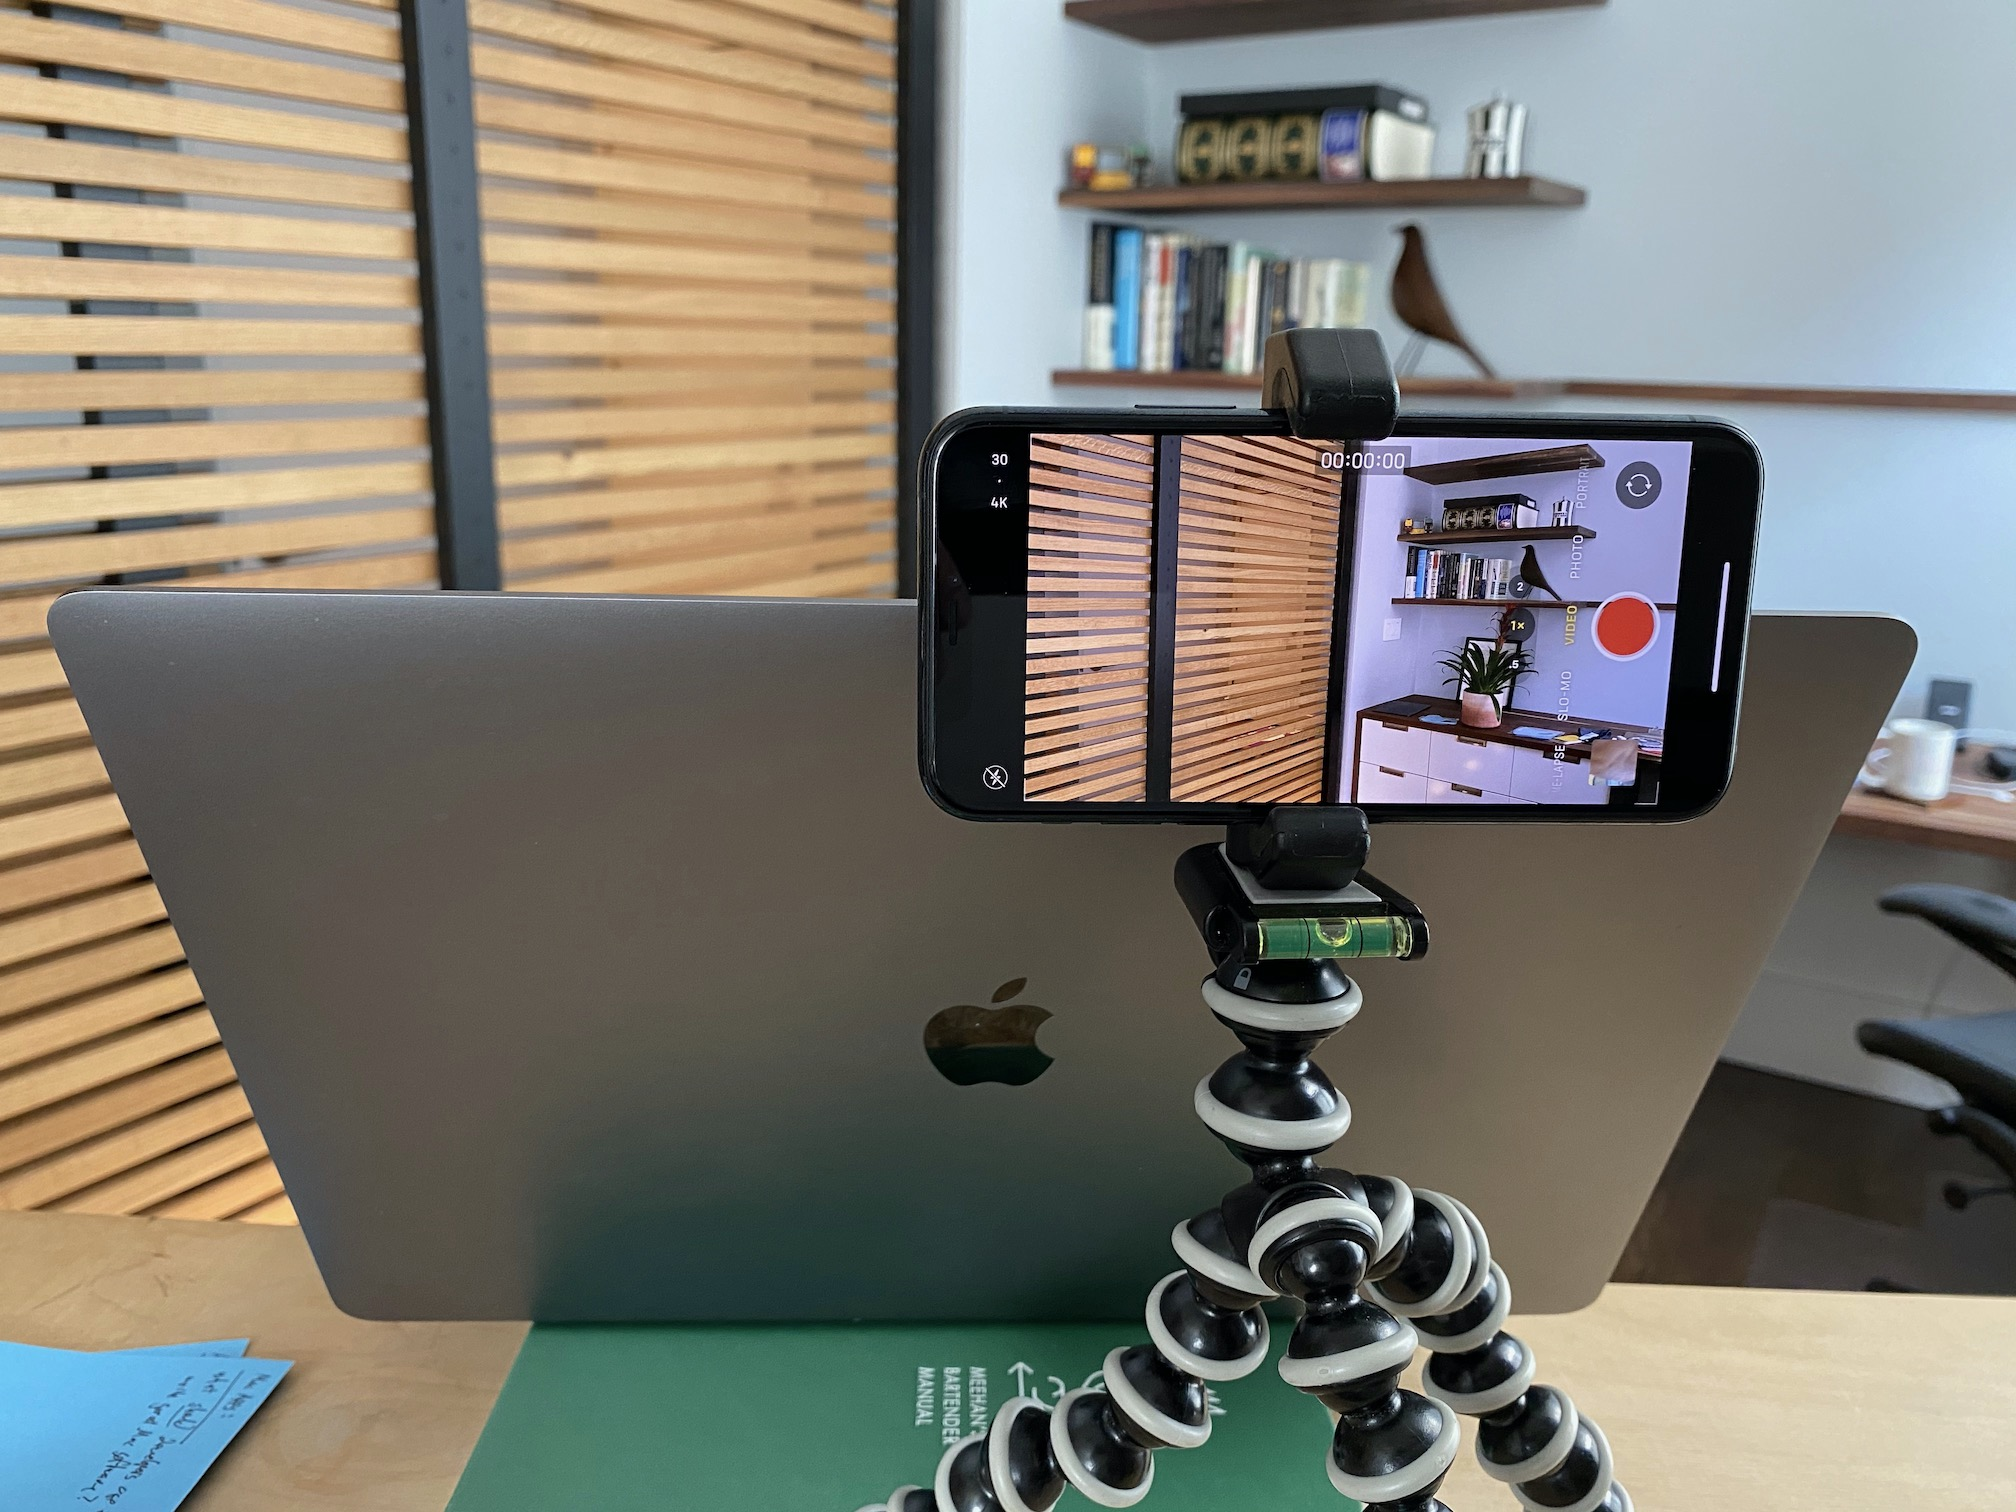 A photo of the camera setup in my office, showing an iPhone mounted on a tripod behind and slightly above an open MacBook Pro.